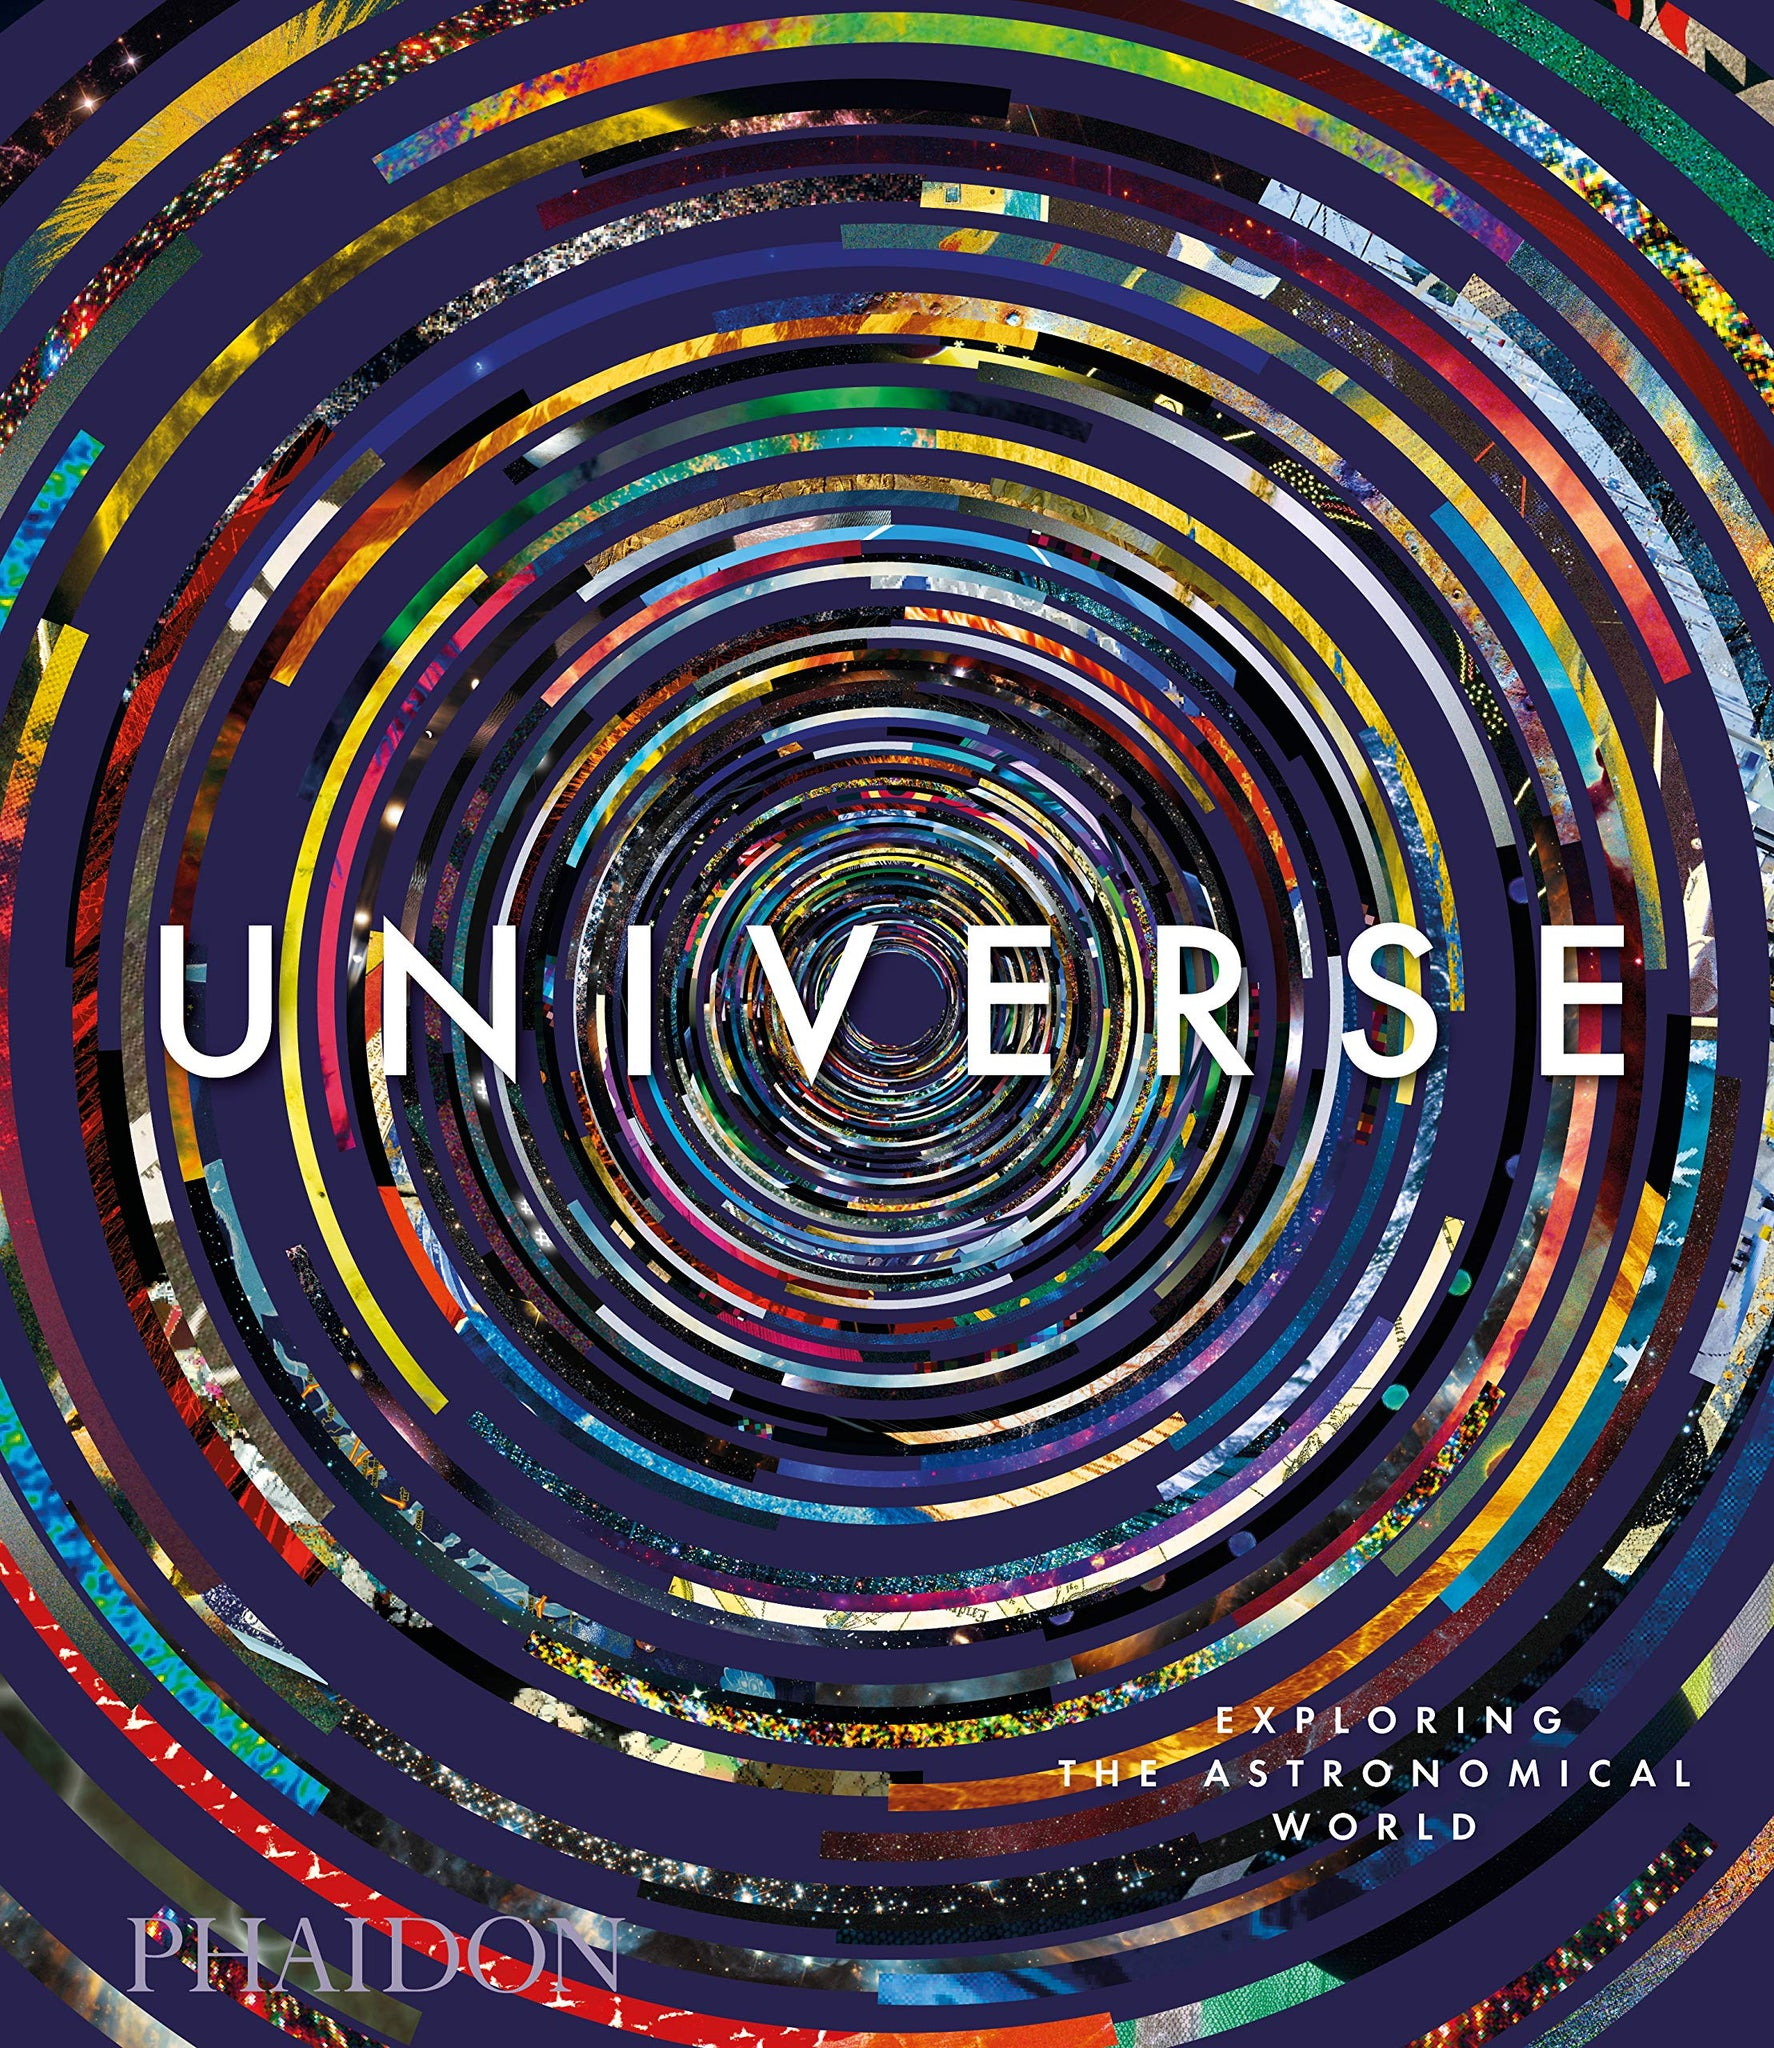 Universe: Exploring the Astronomical World - Midi Format